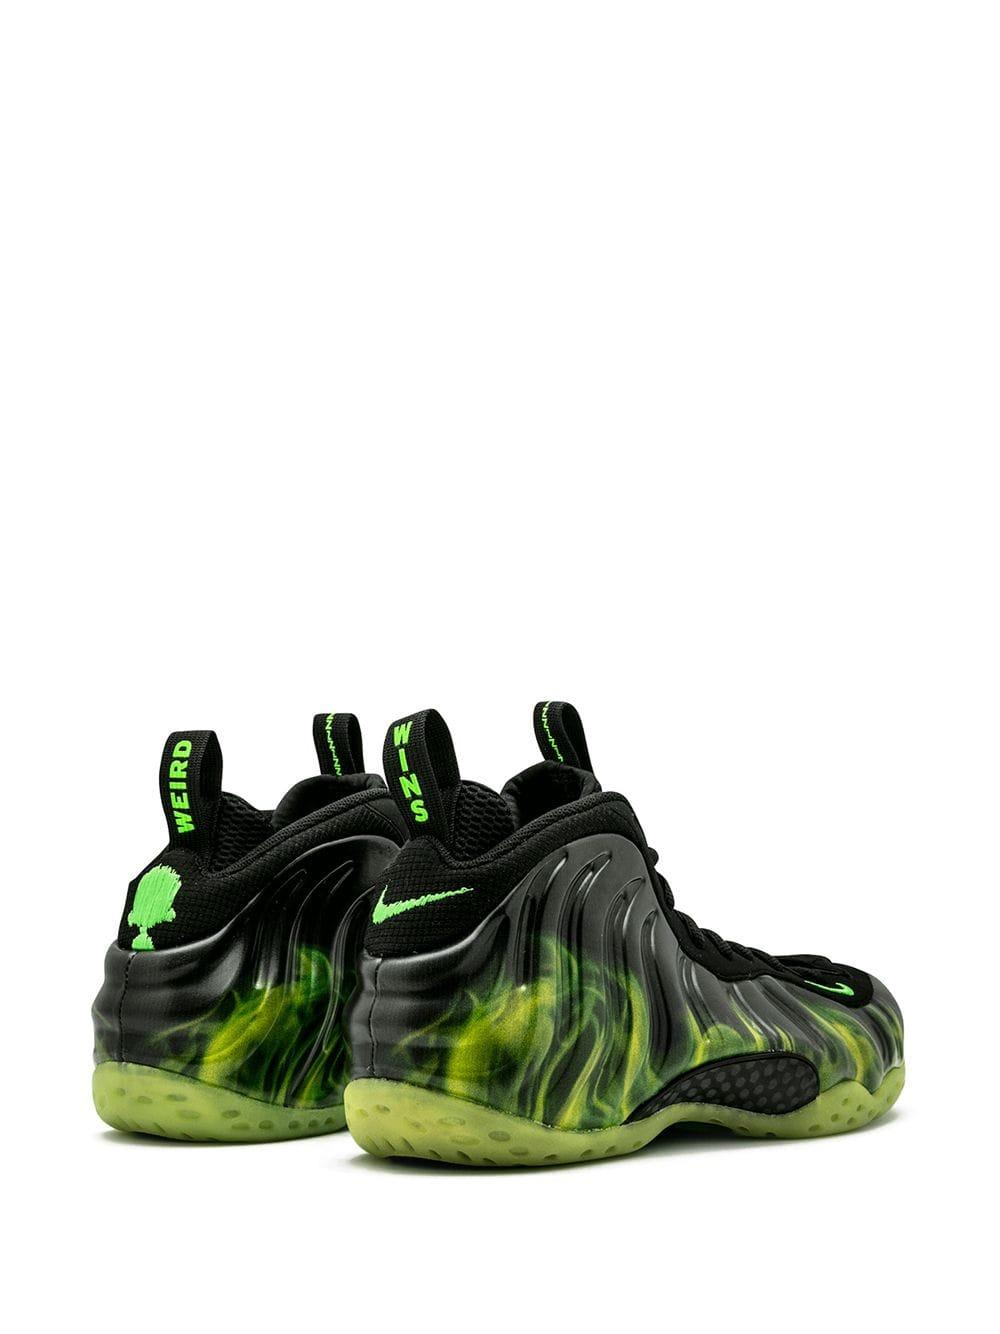 reputable site b38ac 4d876 Nike Air Foamposite One Paranorman Sneakers in Black for Men ...